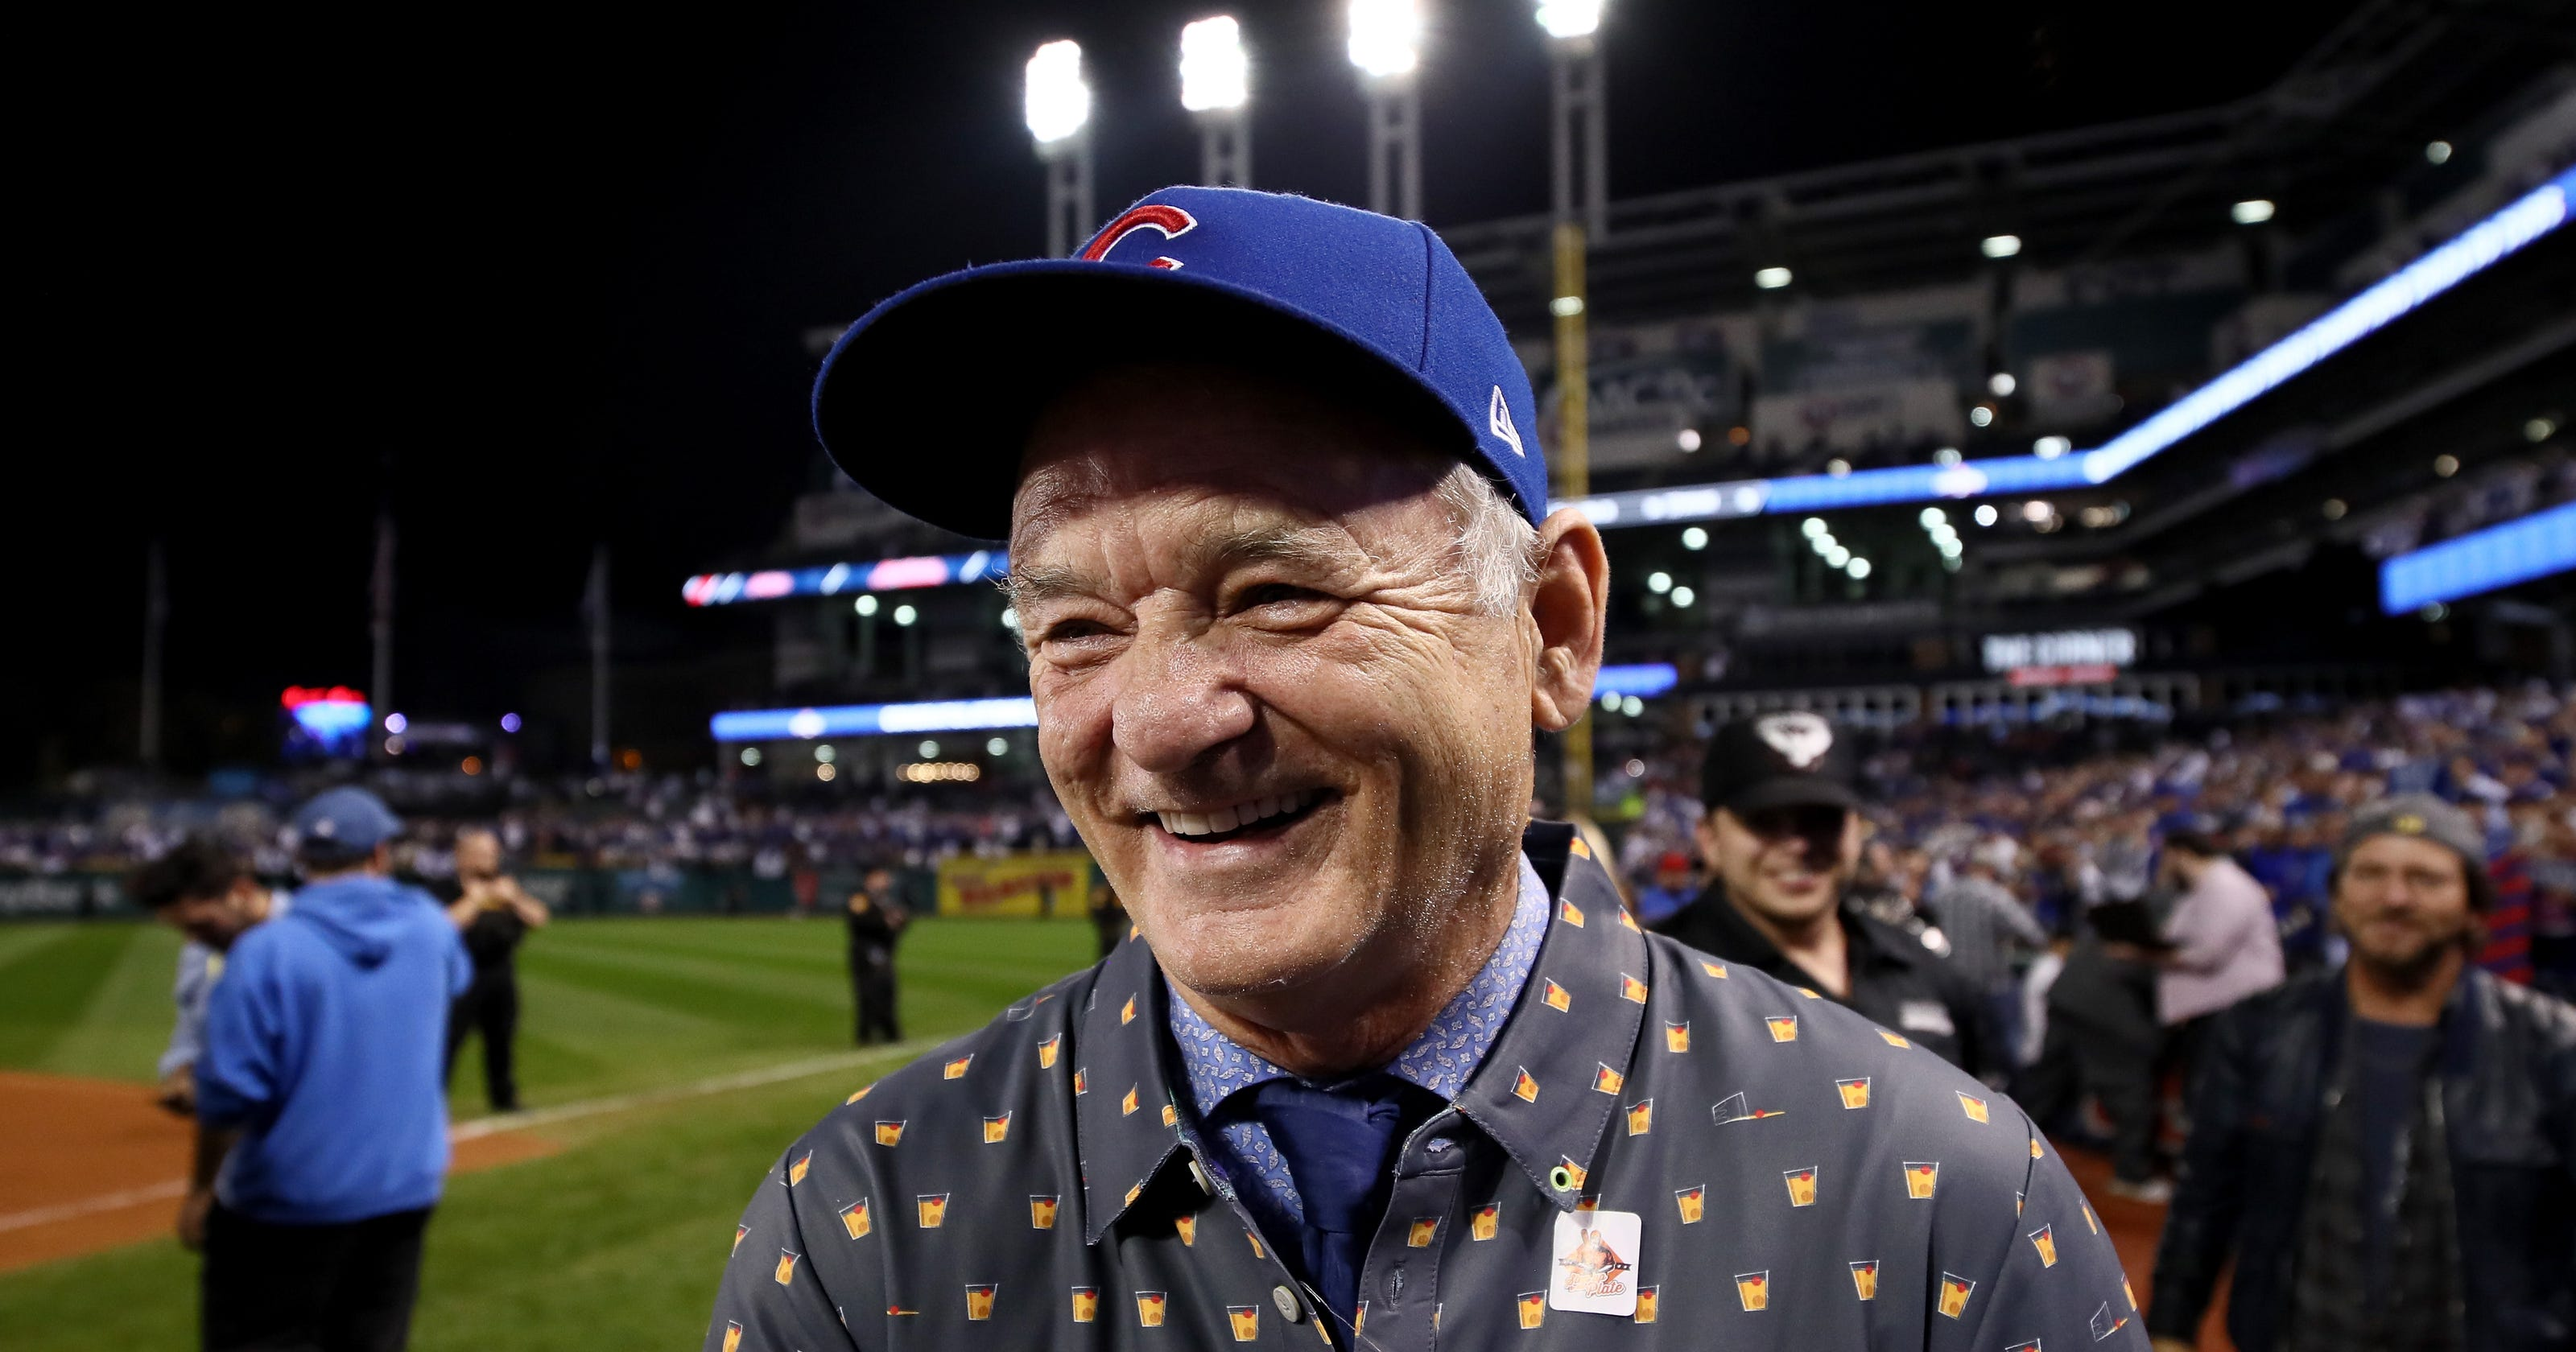 Celebrity fans celebrate the Cubs  long-awaited World Series win 4ee6453f7d6